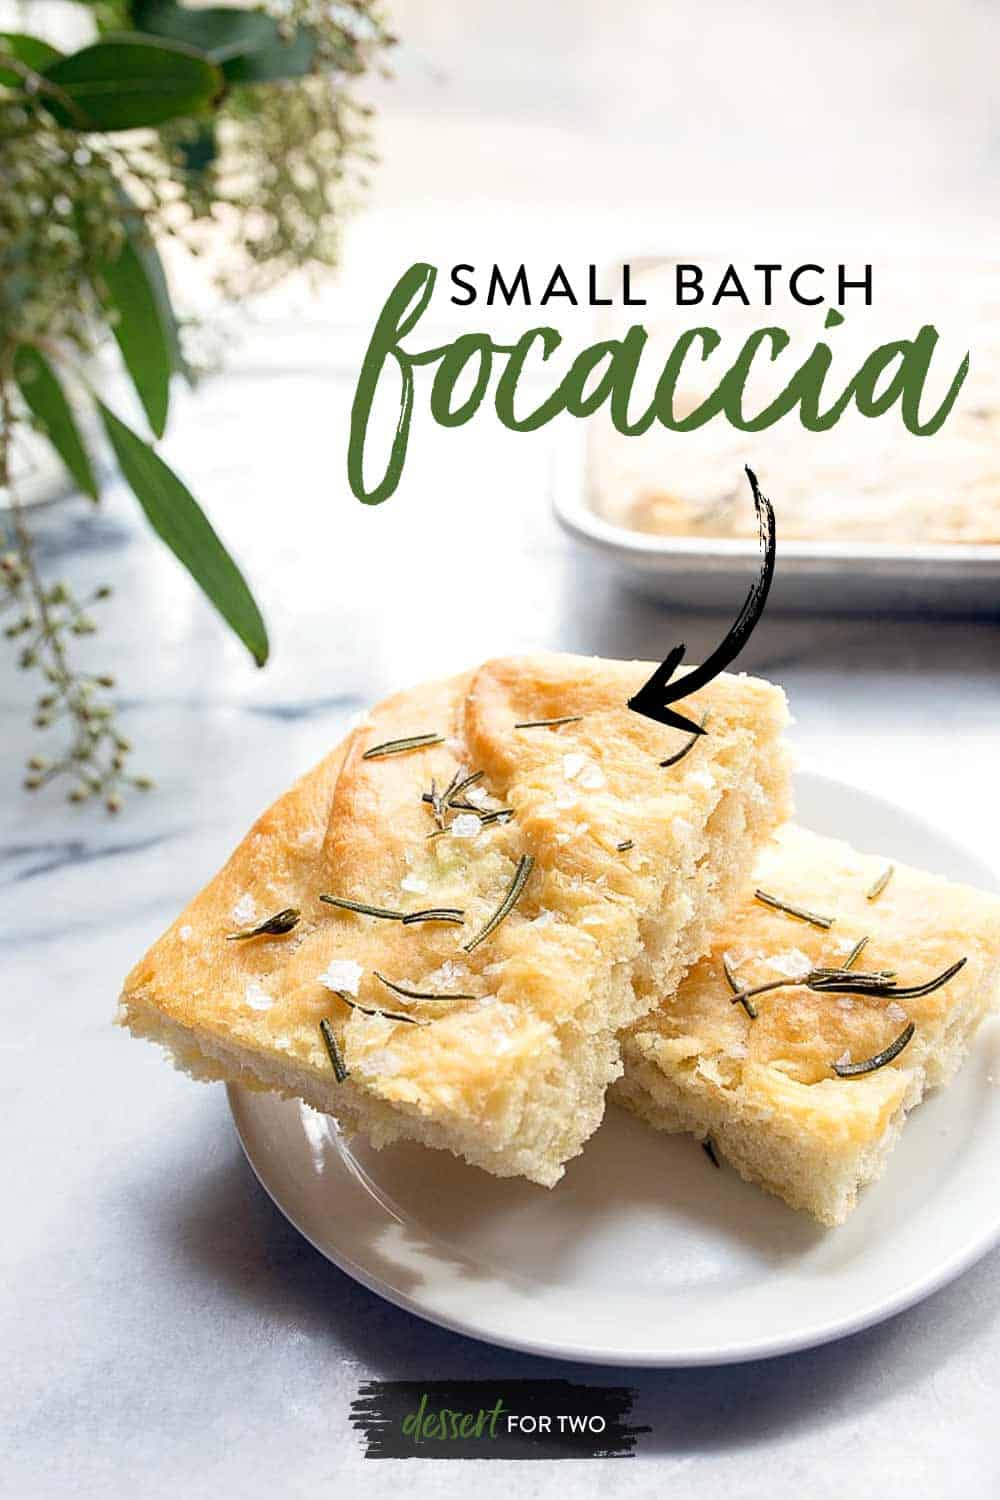 Rosemary focaccia bread! How to make a small batch of focaccia in a quarter sheet pan. Easy focaccia recipe in just 2 hours.